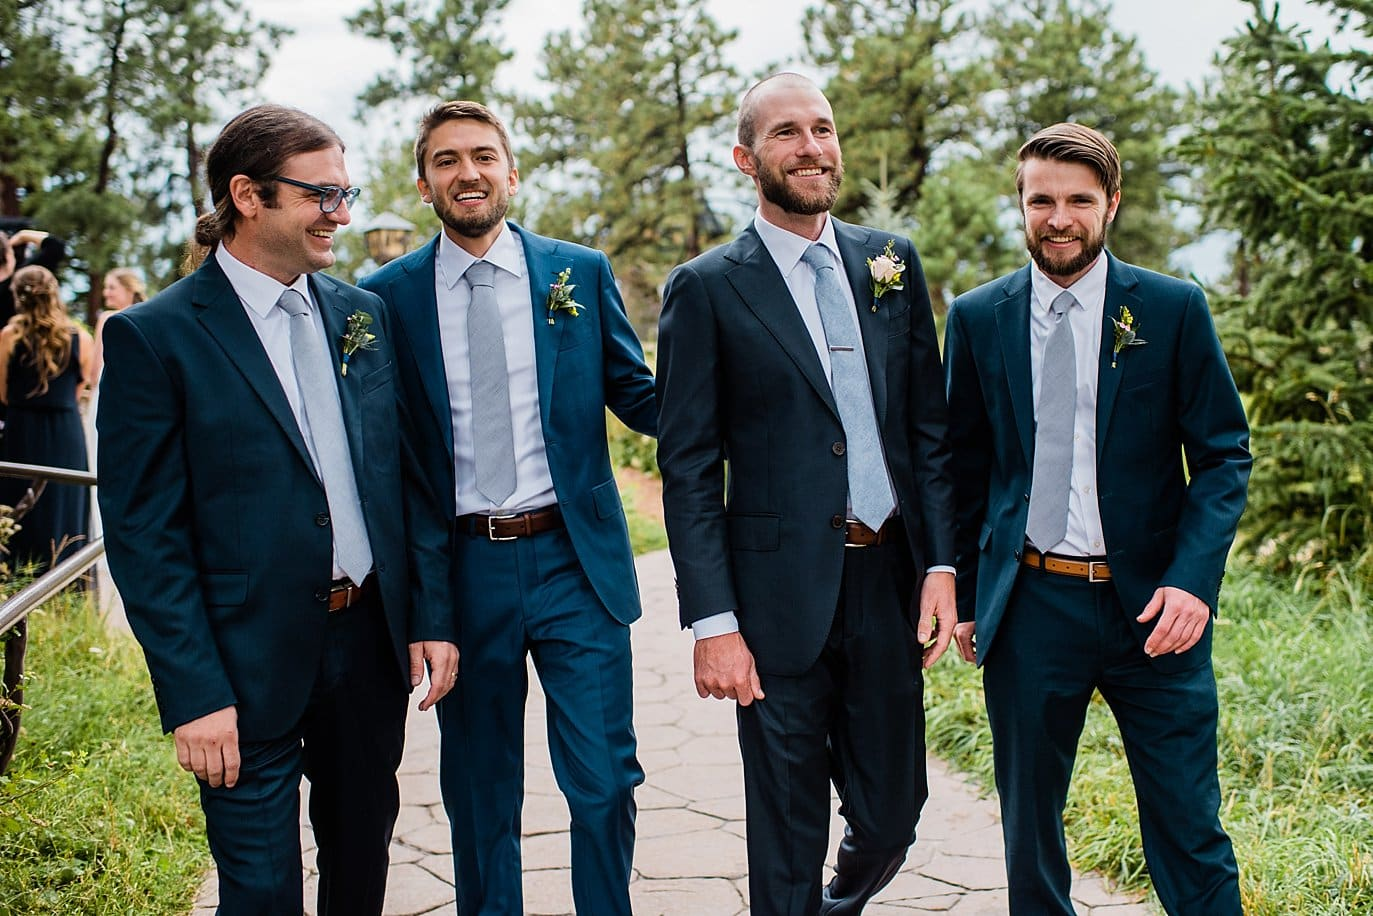 groom and groomsmen in mismatched navy blue suits and periwinkle ties